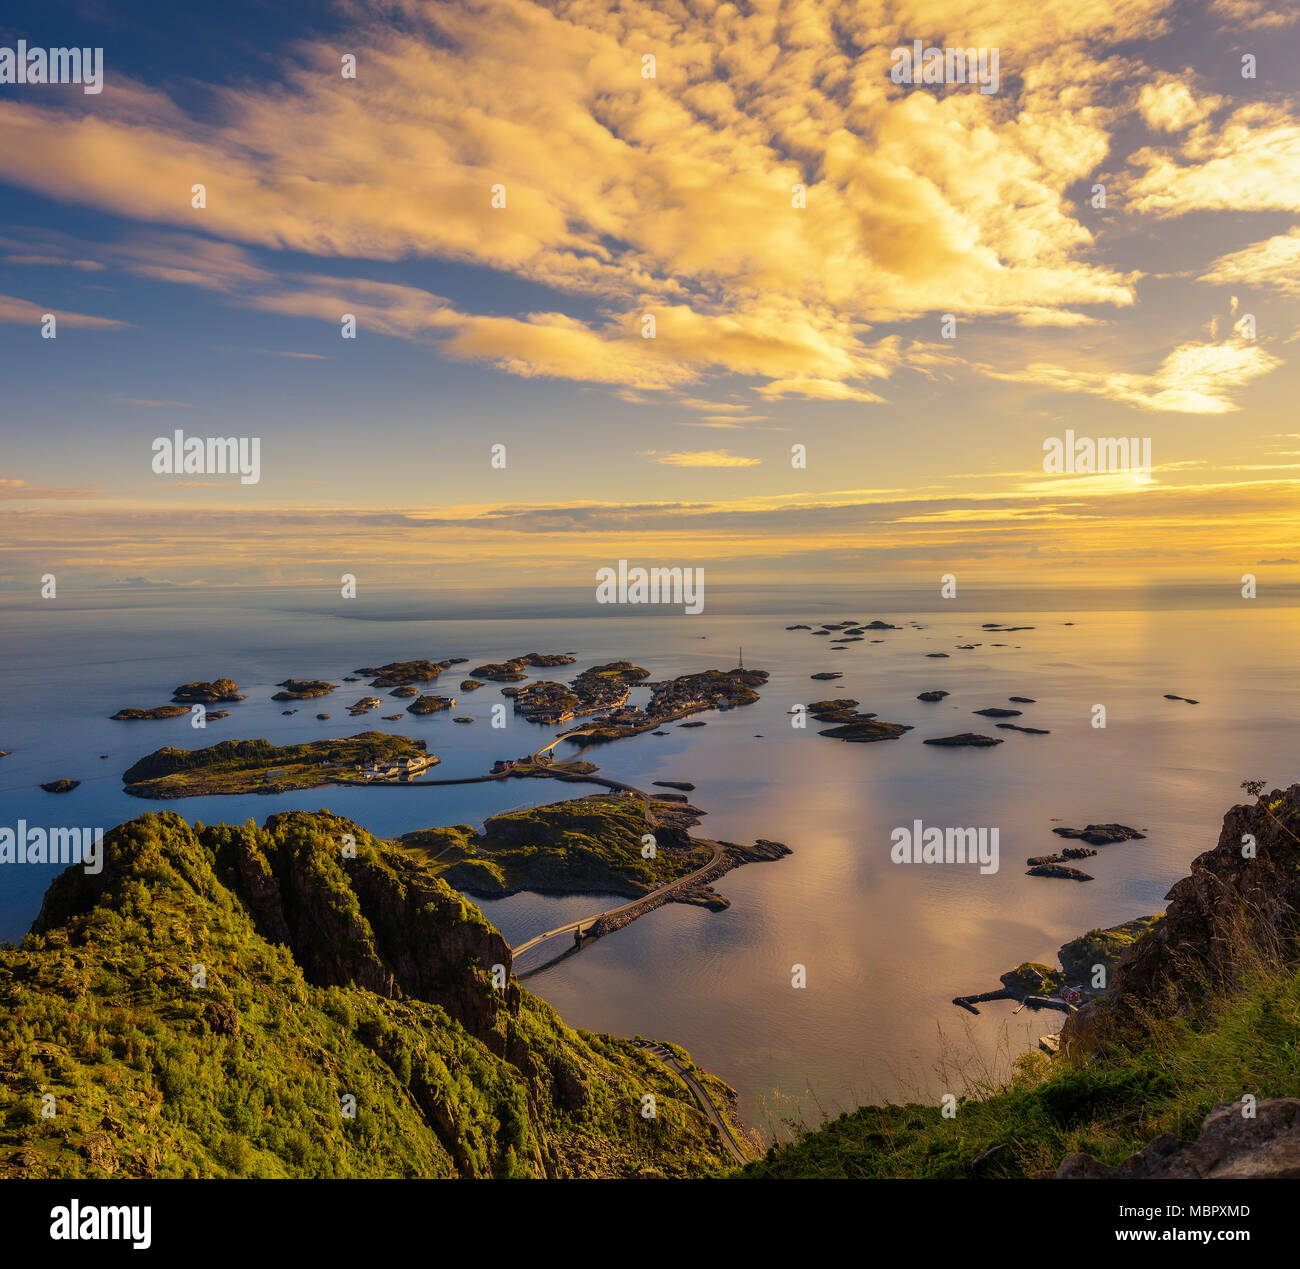 View from mount Festvagtinden in Norway - Stock Image